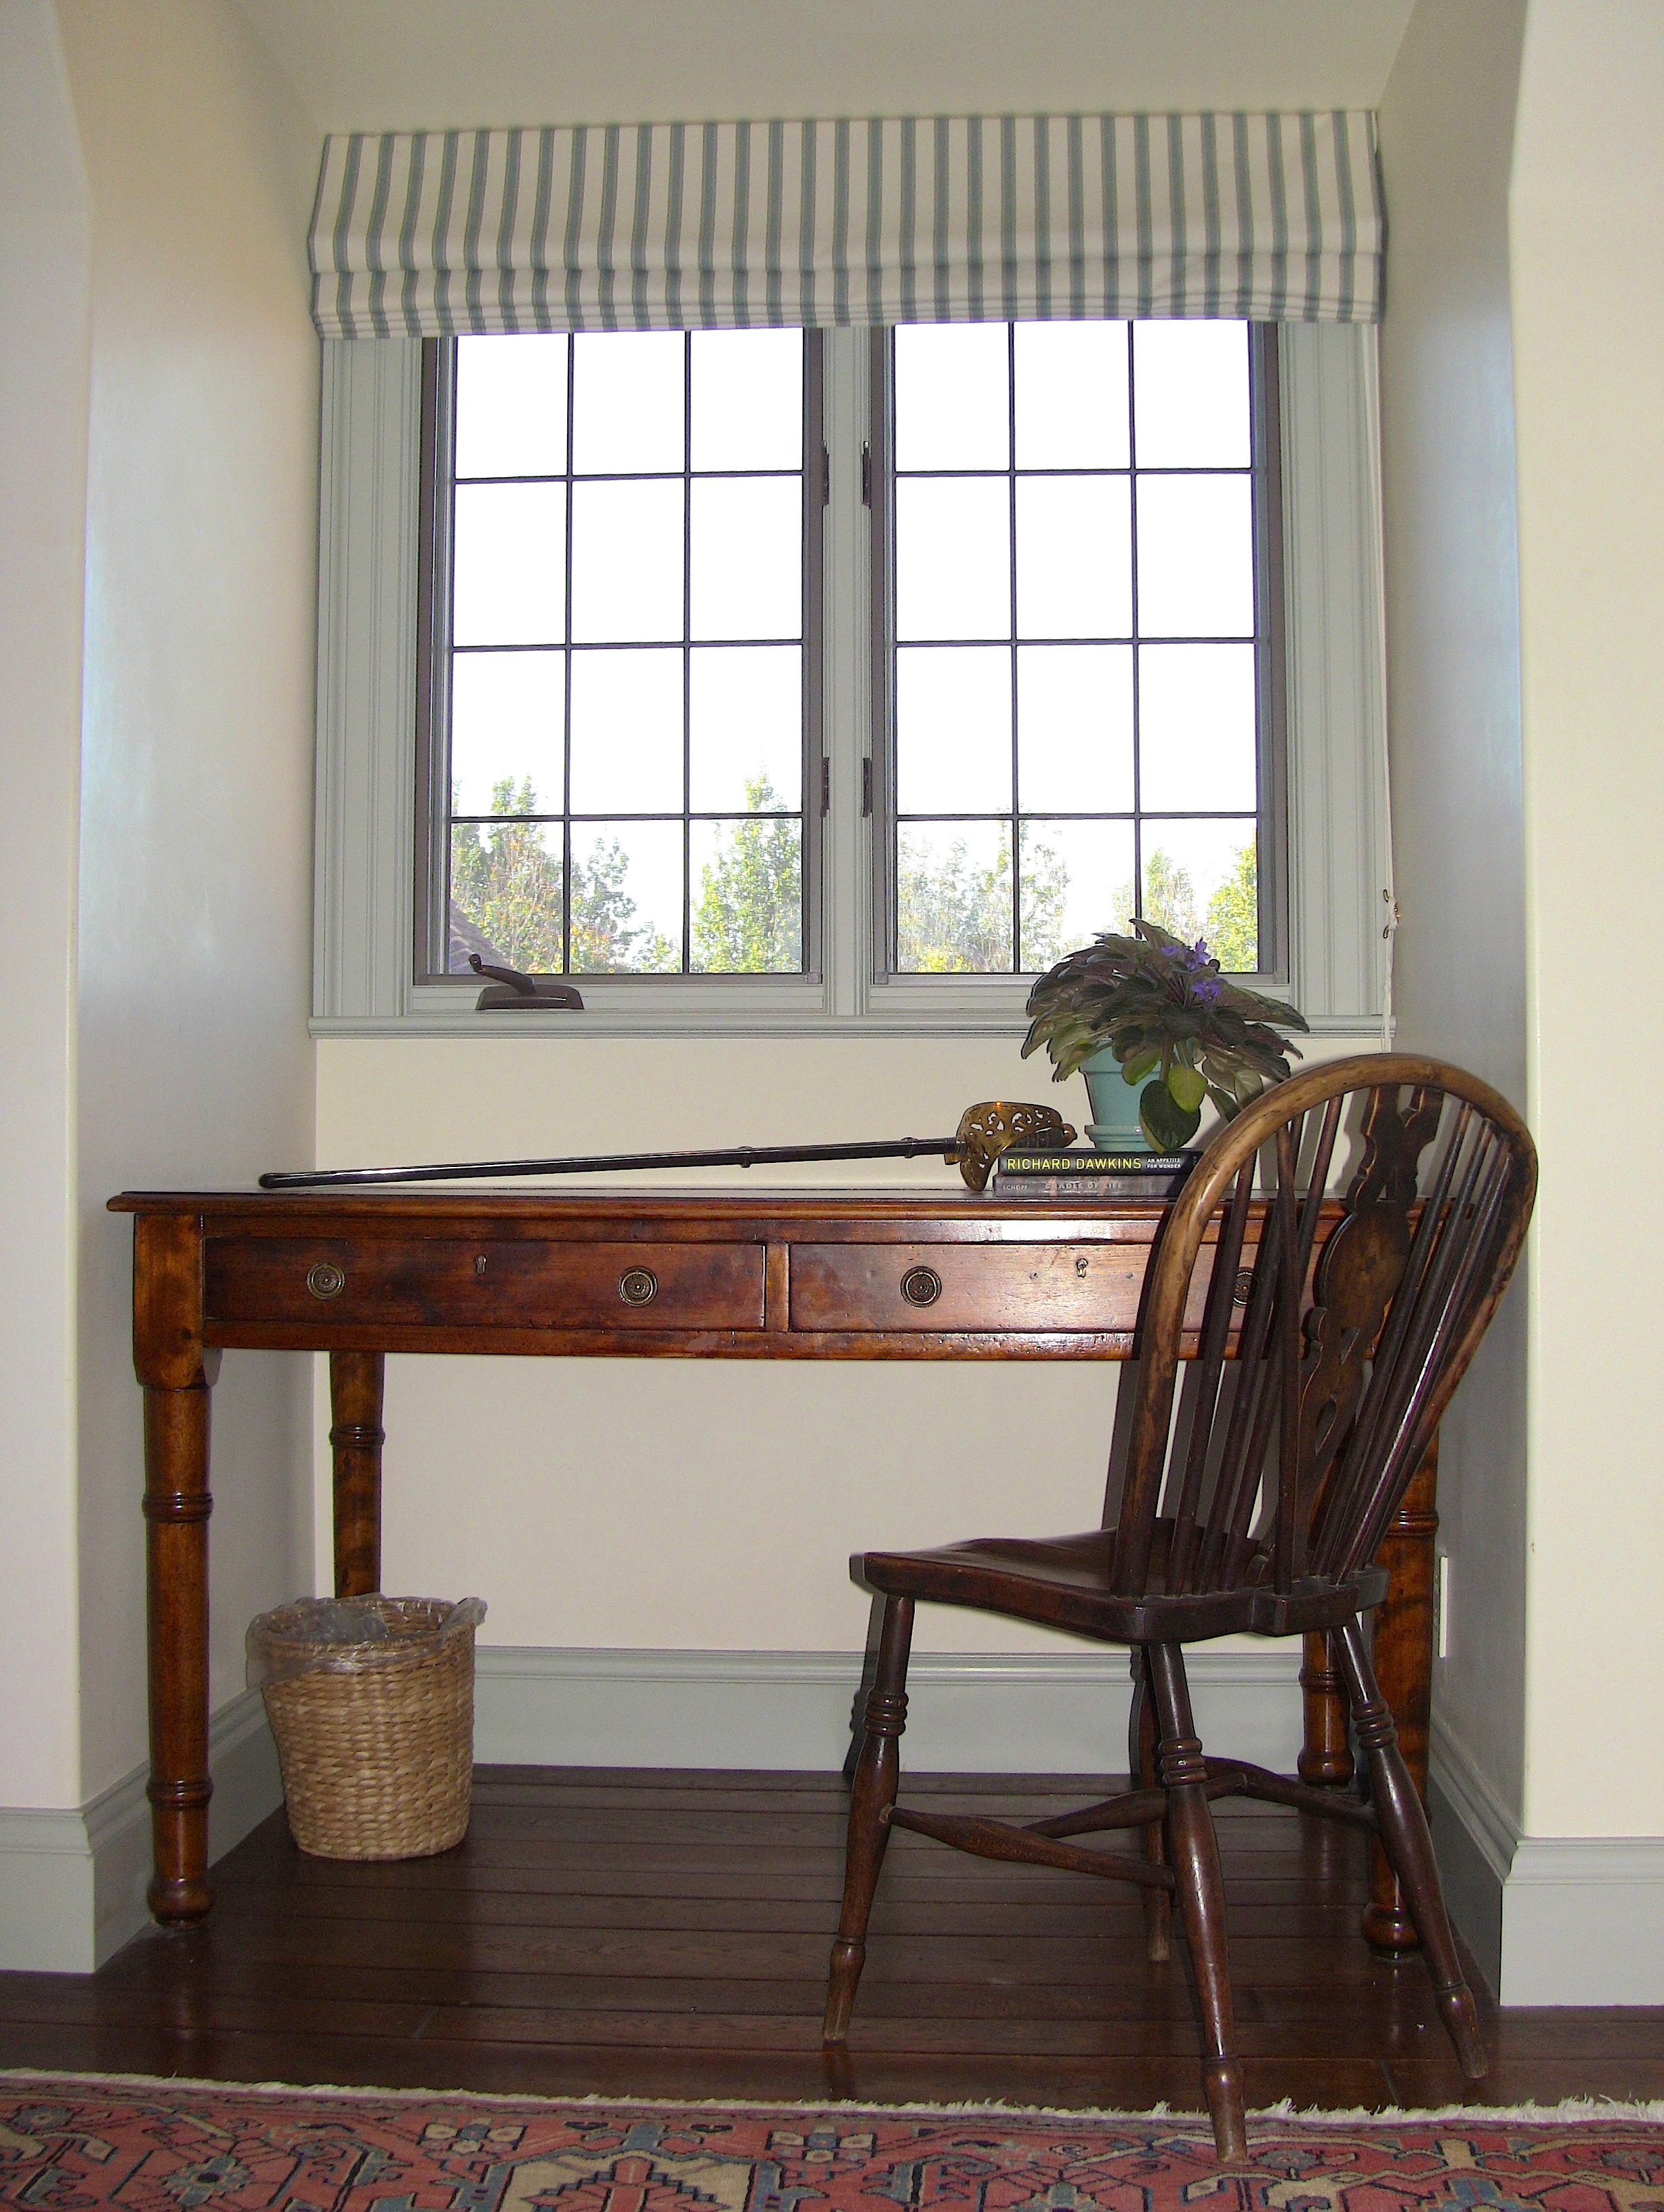 On the Northwest side of the room, a dormer window accommodates perfectly an antique study desk.